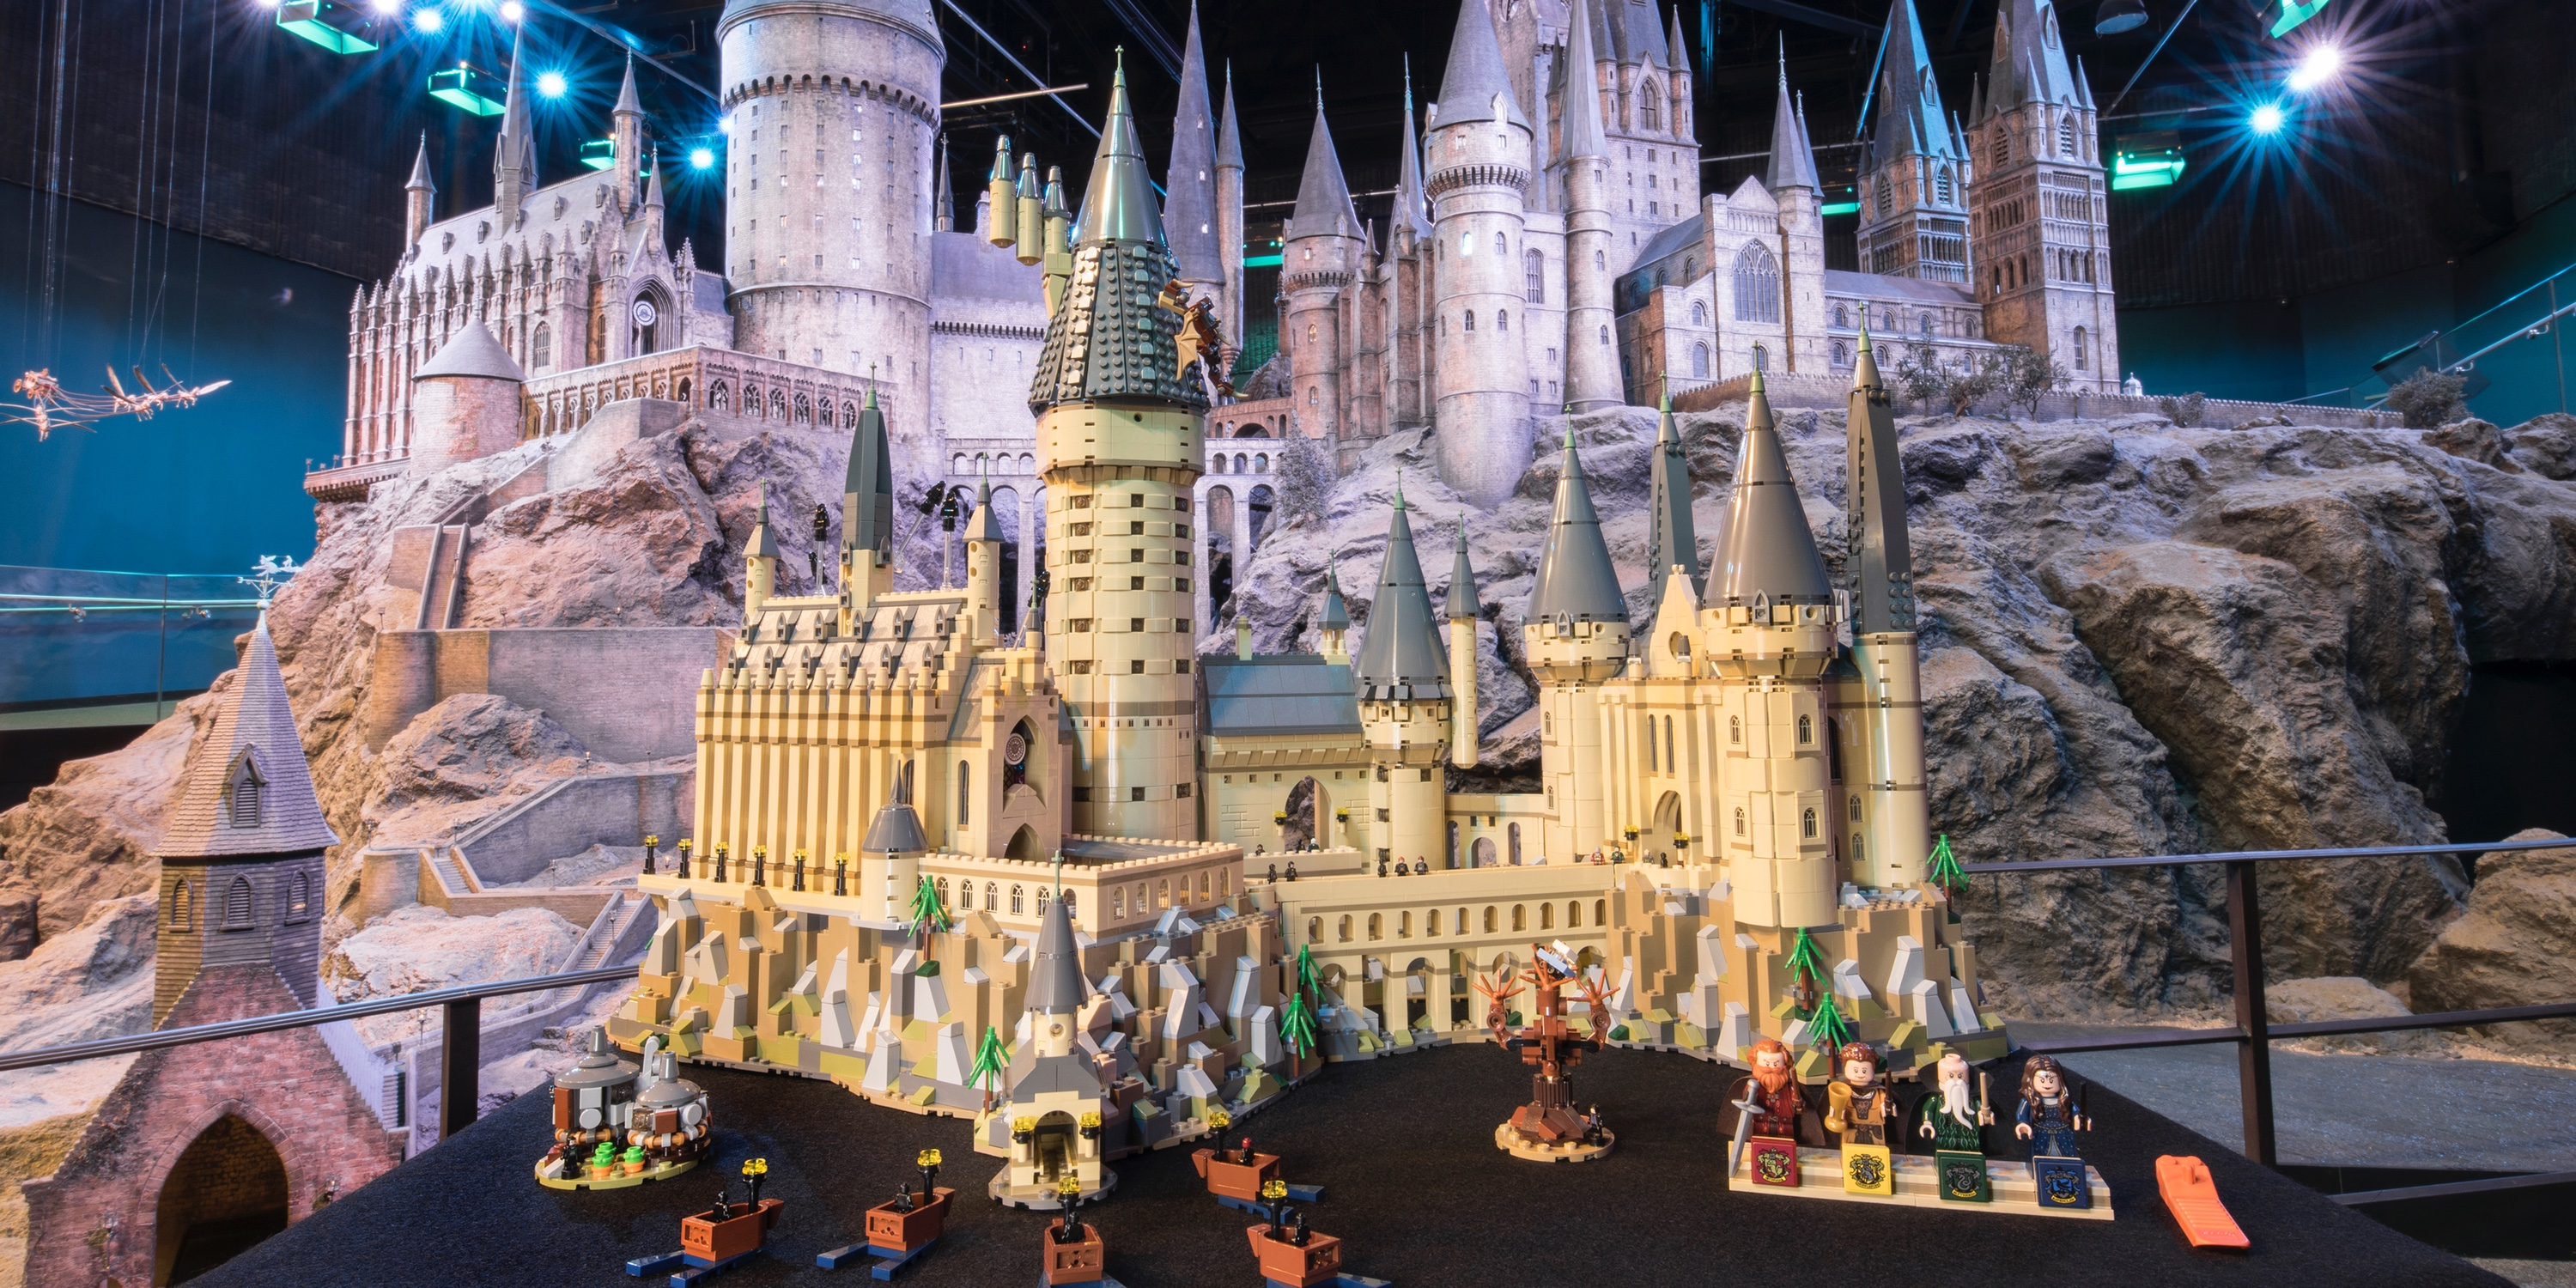 LEGO brings all the magic of Hogwarts Castle to a massive 6,000-piece brick-built release